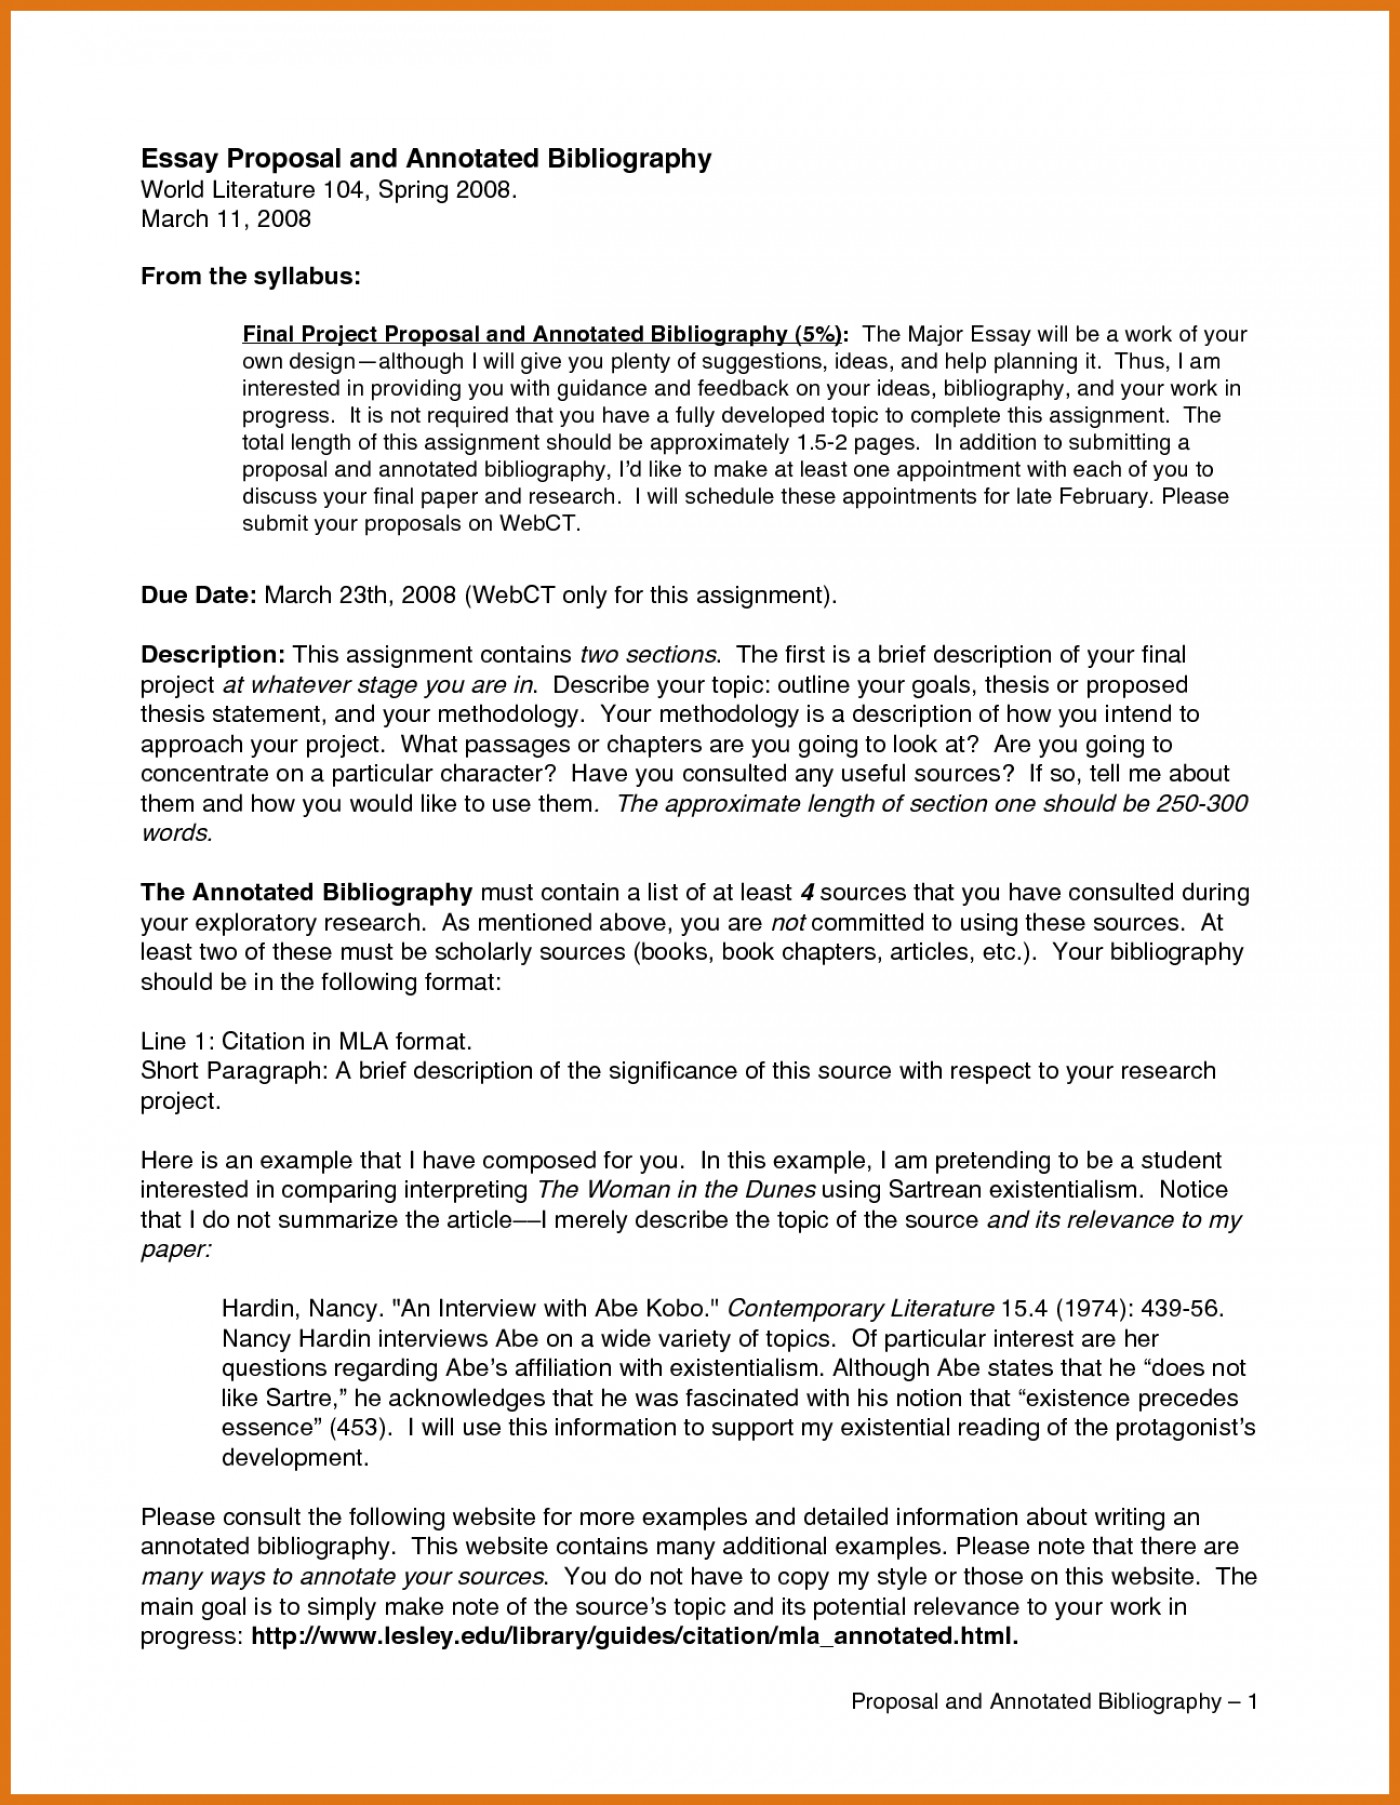 025 Essay Example How To Cite Articles In Bunch Ideas Of Chicago Style Essays Citation Sources Mlaormat Excellent Bibliography Sampleor Research Paper Singular Apa Online Article Title 1400